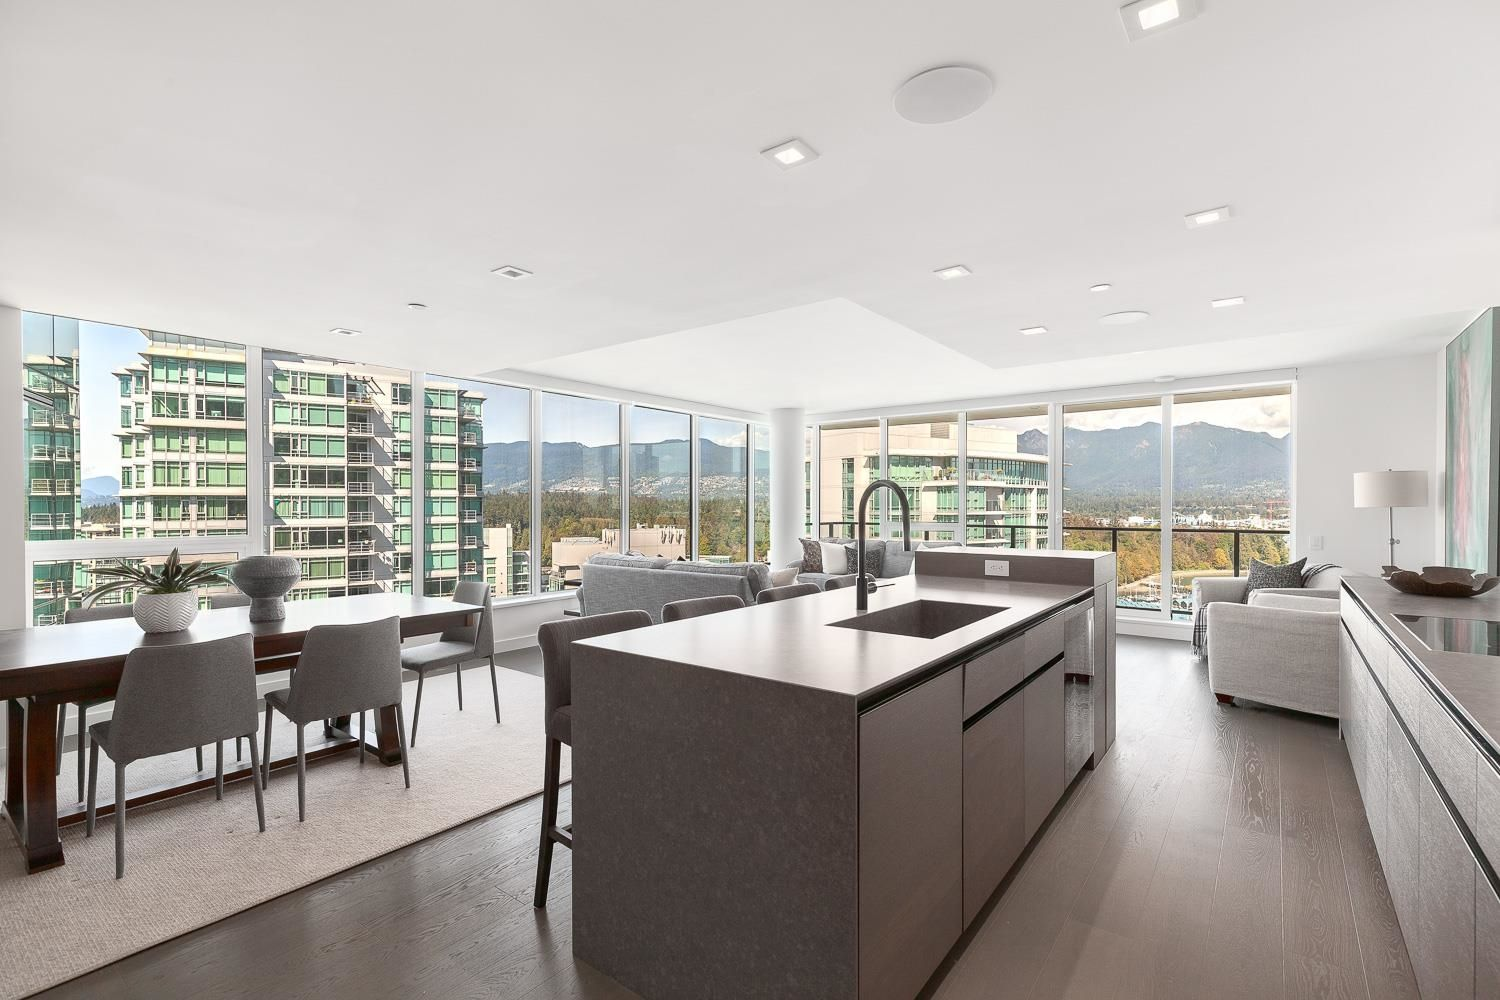 """Main Photo: 2101 620 CARDERO Street in Vancouver: Coal Harbour Condo for sale in """"CARDERO"""" (Vancouver West)  : MLS®# R2620274"""